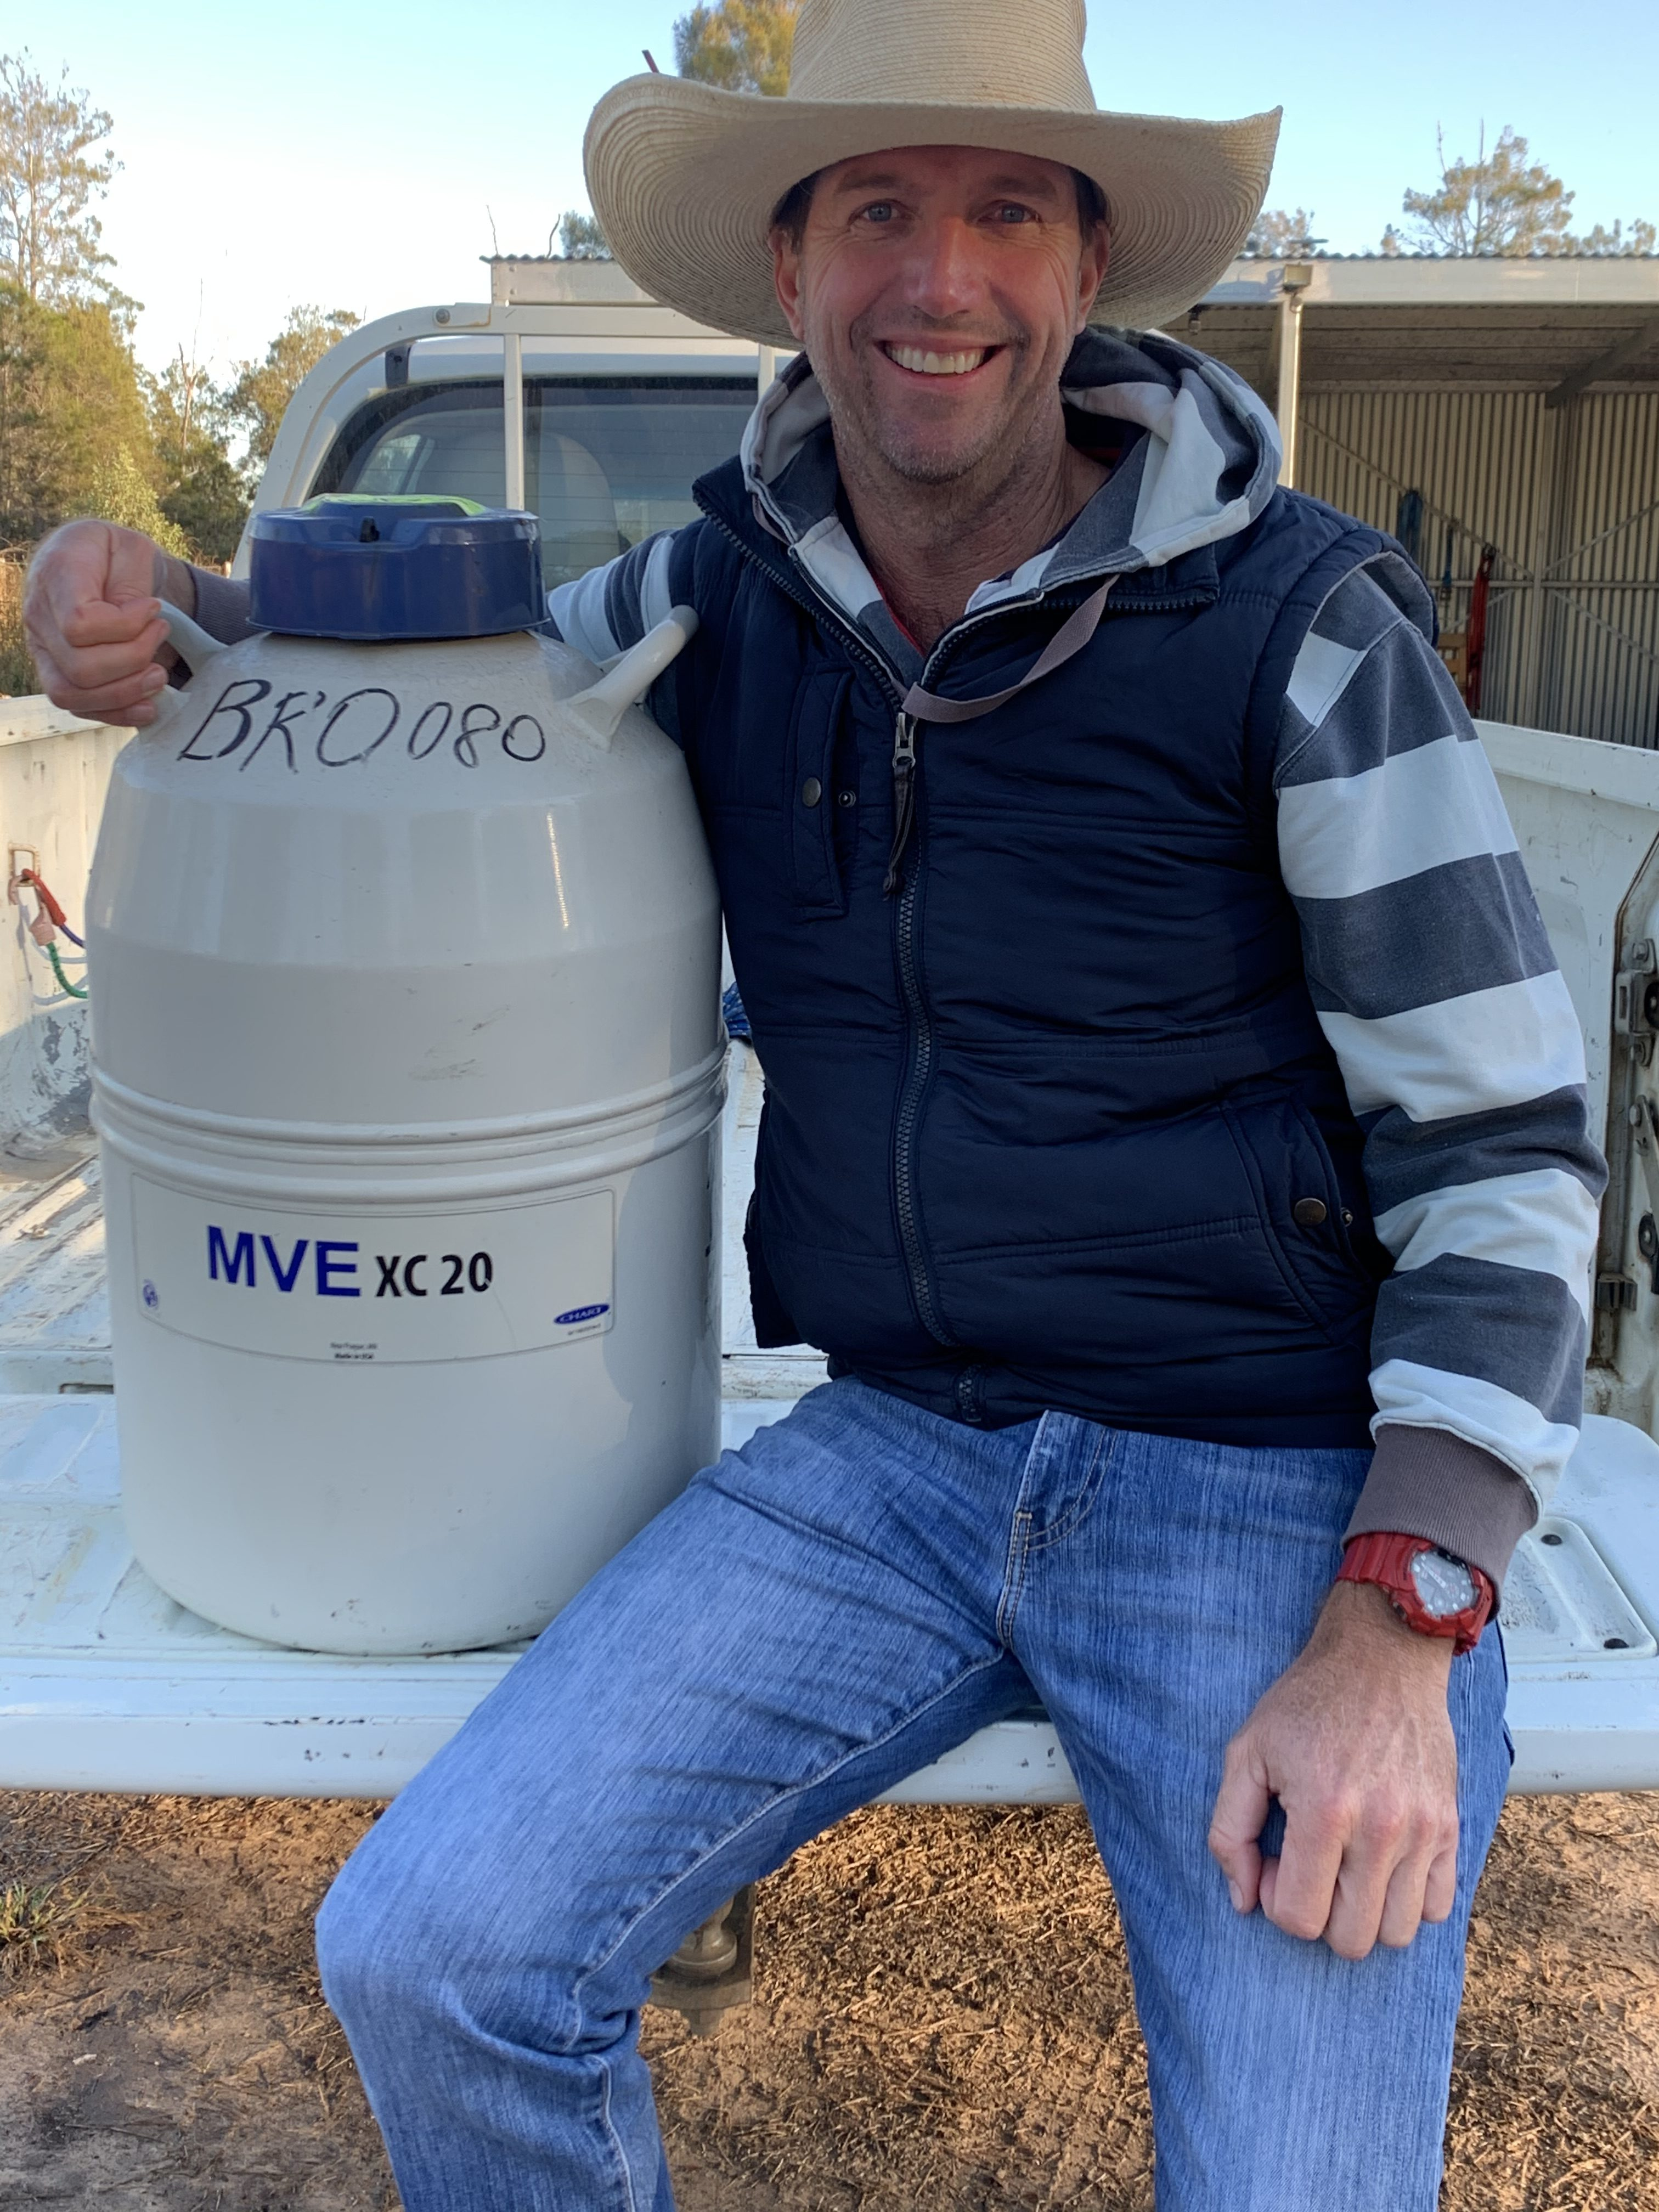 Matt Brown with a semen storage tank on the back of a vehicle.